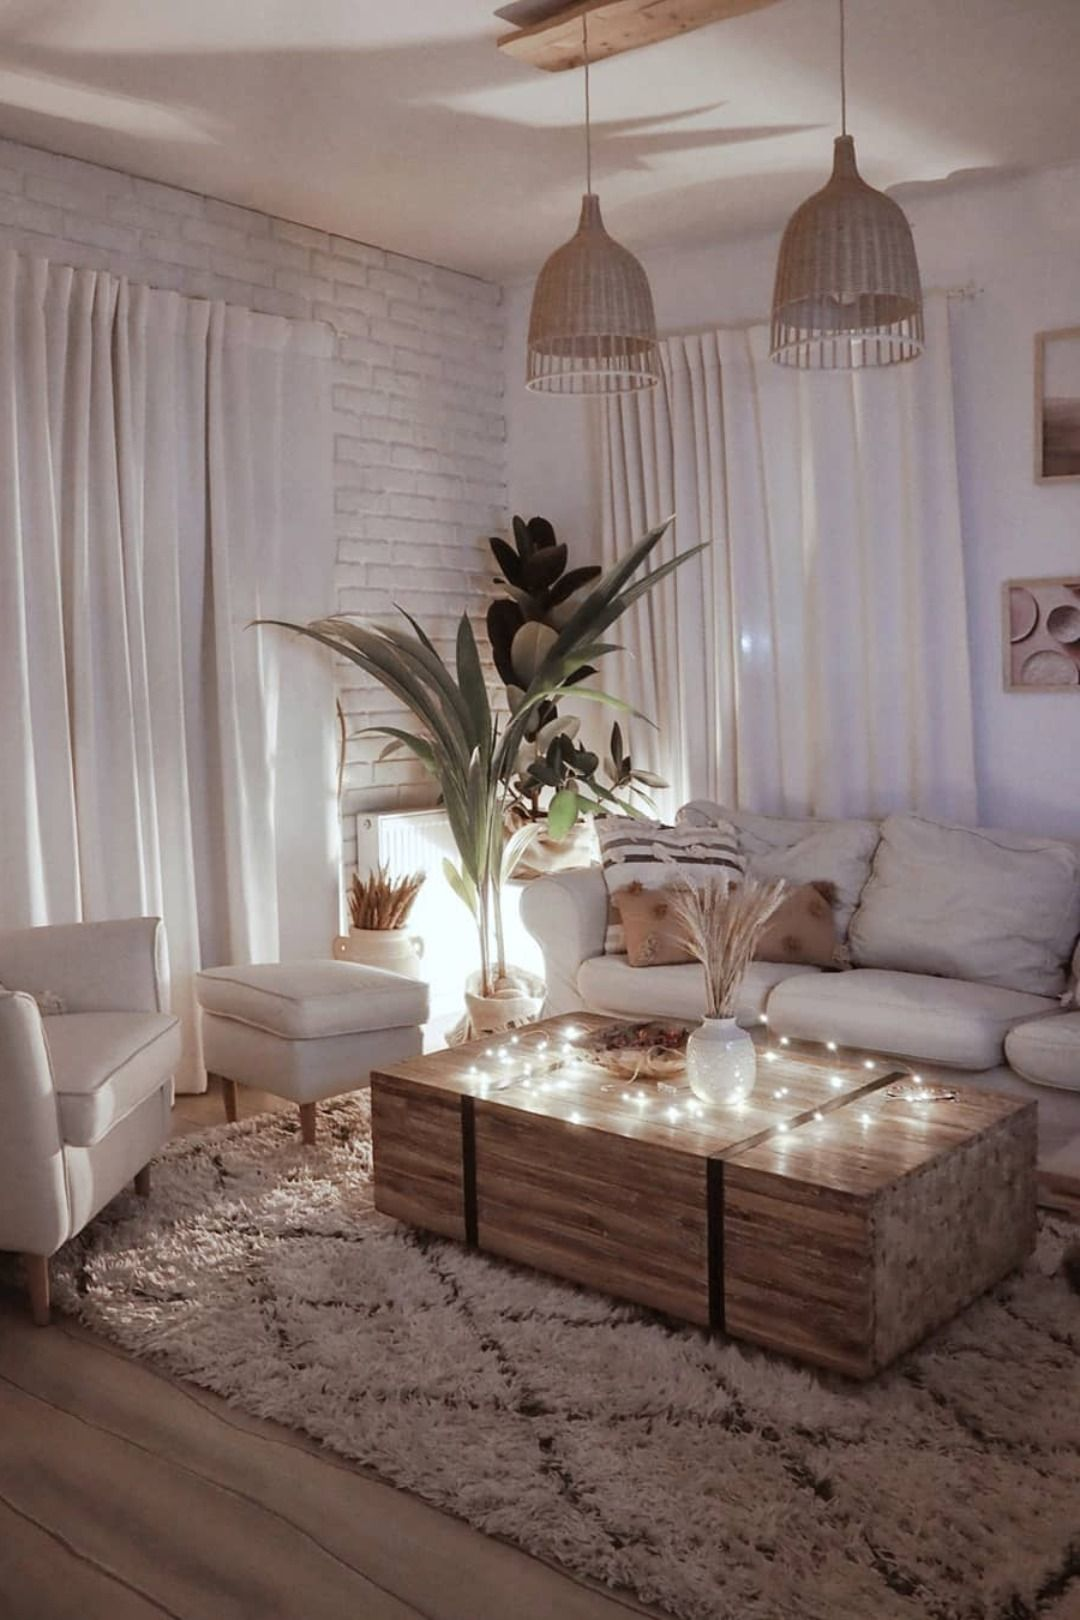 Solid Wooden Coffee Table Rustic Living Room Idea Sitting Area Farm House Living Room Farmhouse Decor Living Room Living Room Decor Cozy